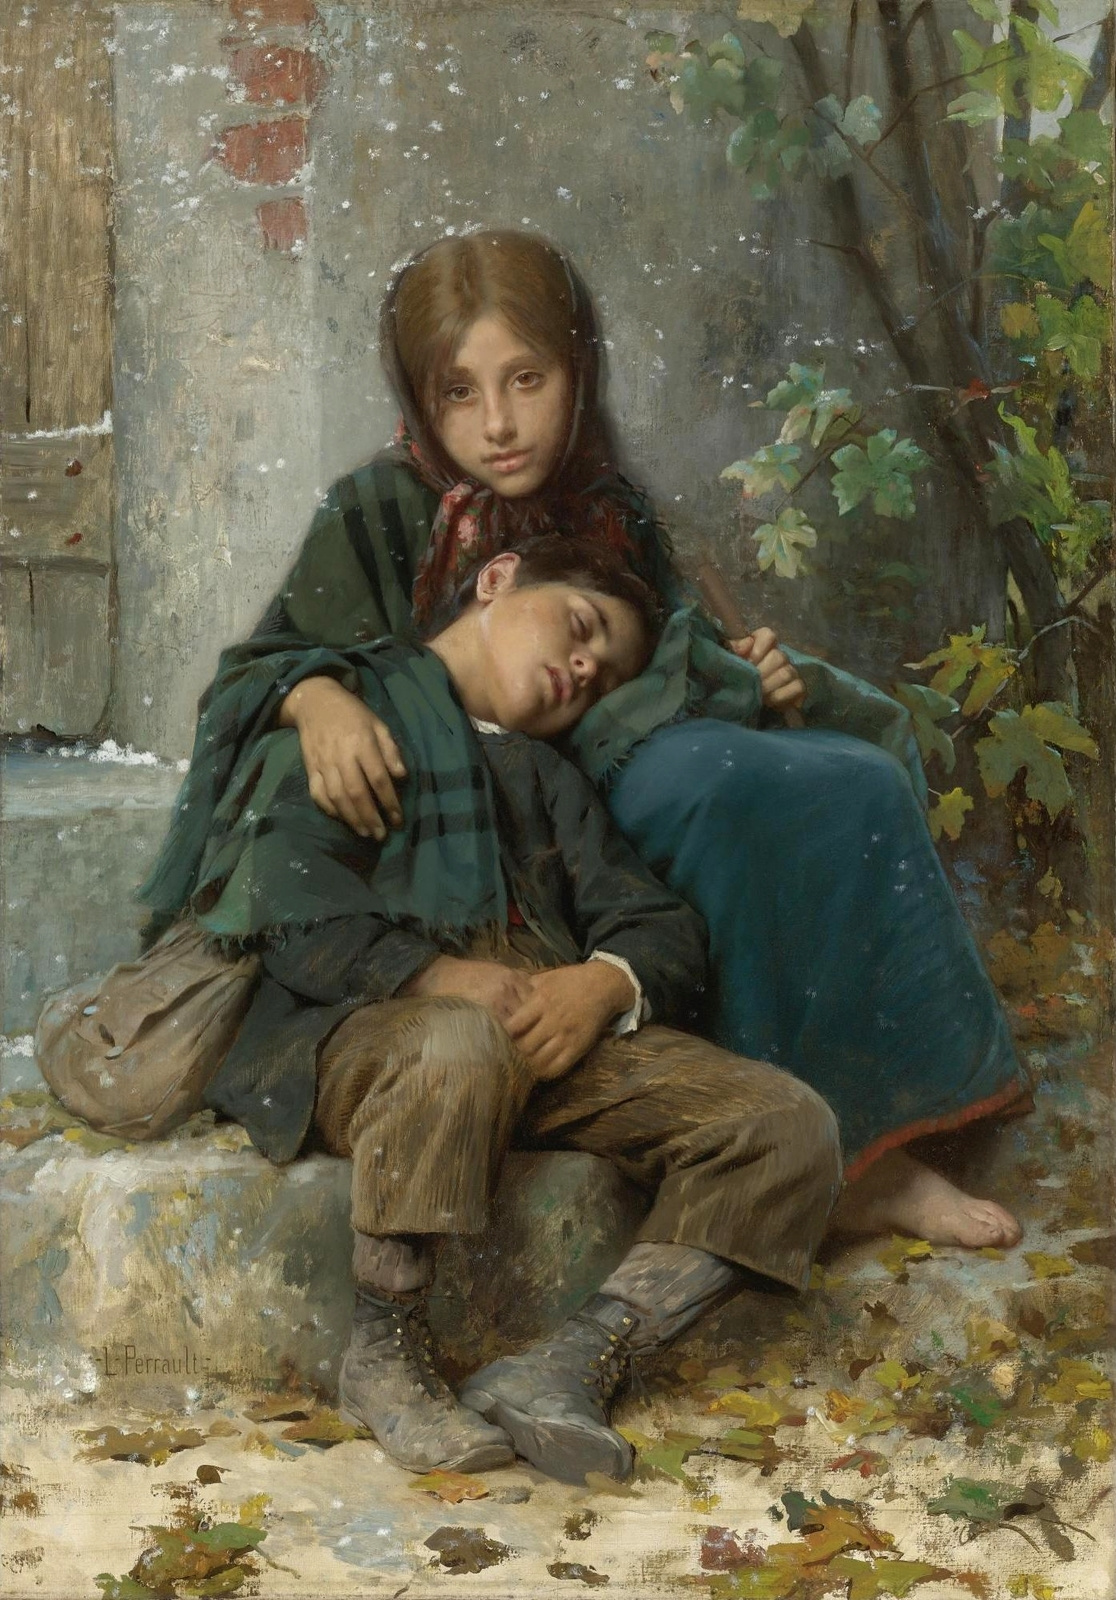 Leon Basile Perrot France 1832-1908. In the cold.